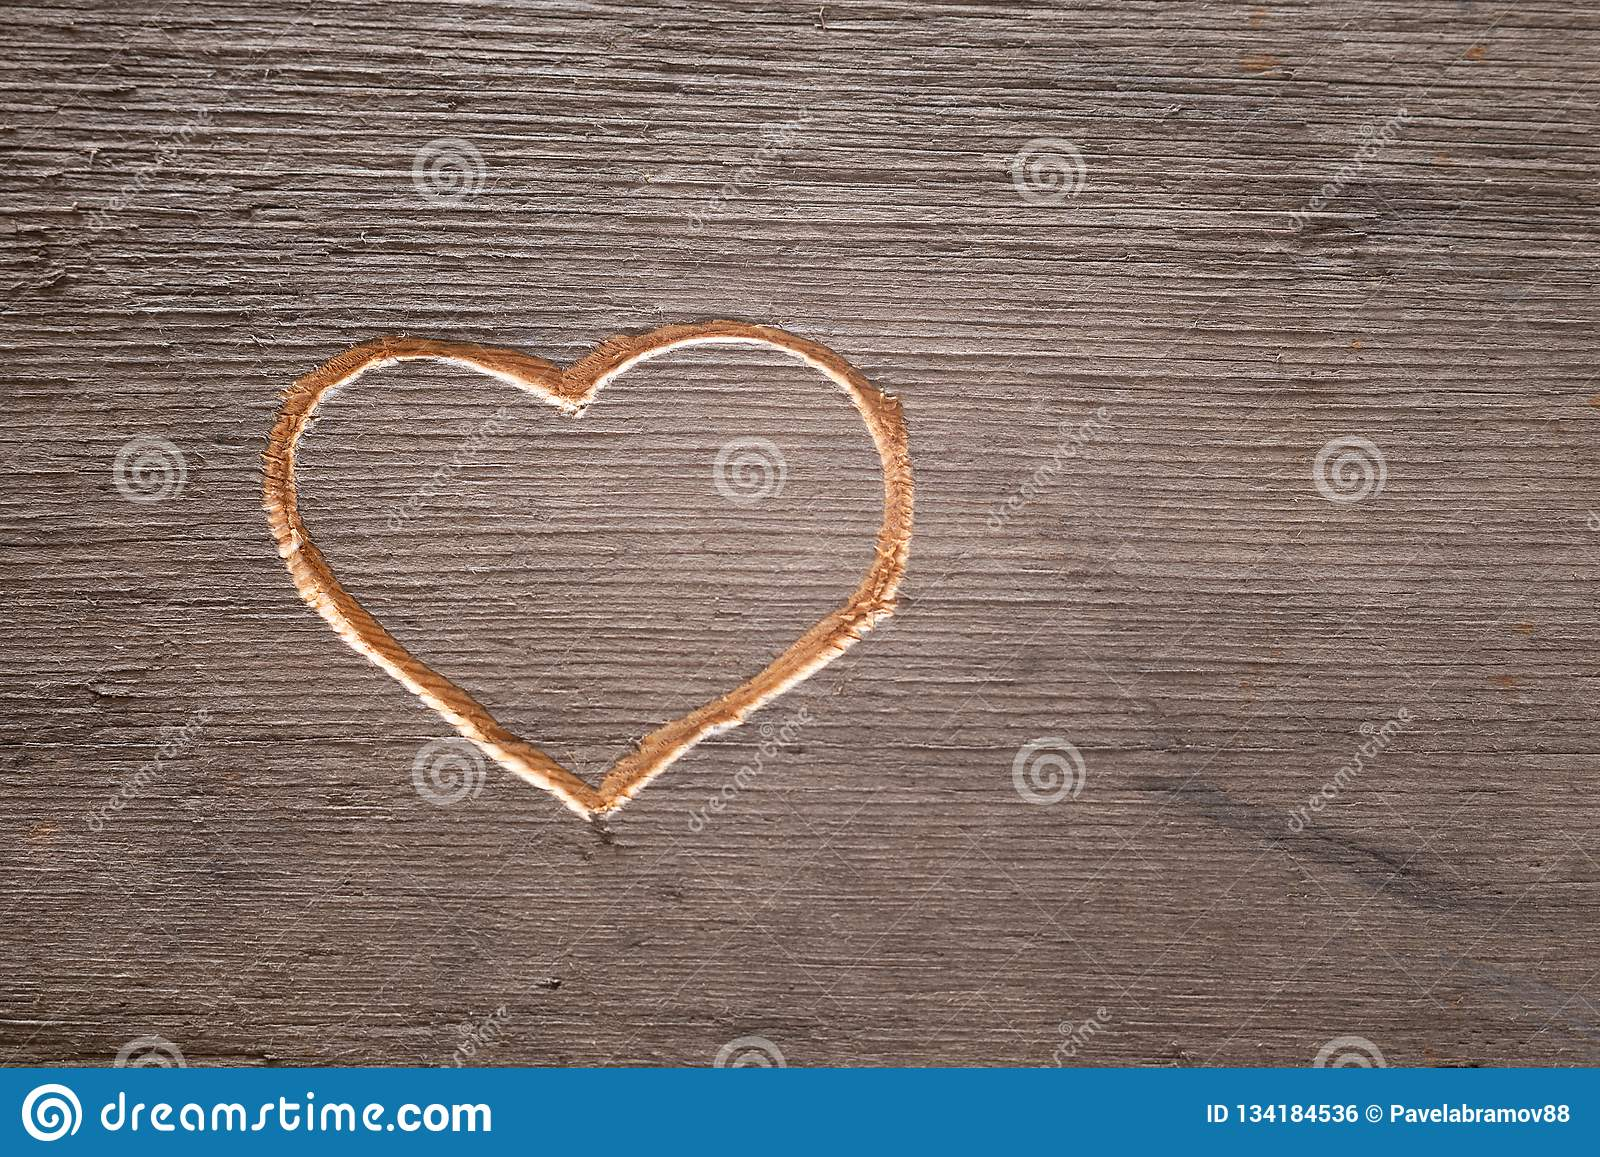 Heart carved on the wooden plank